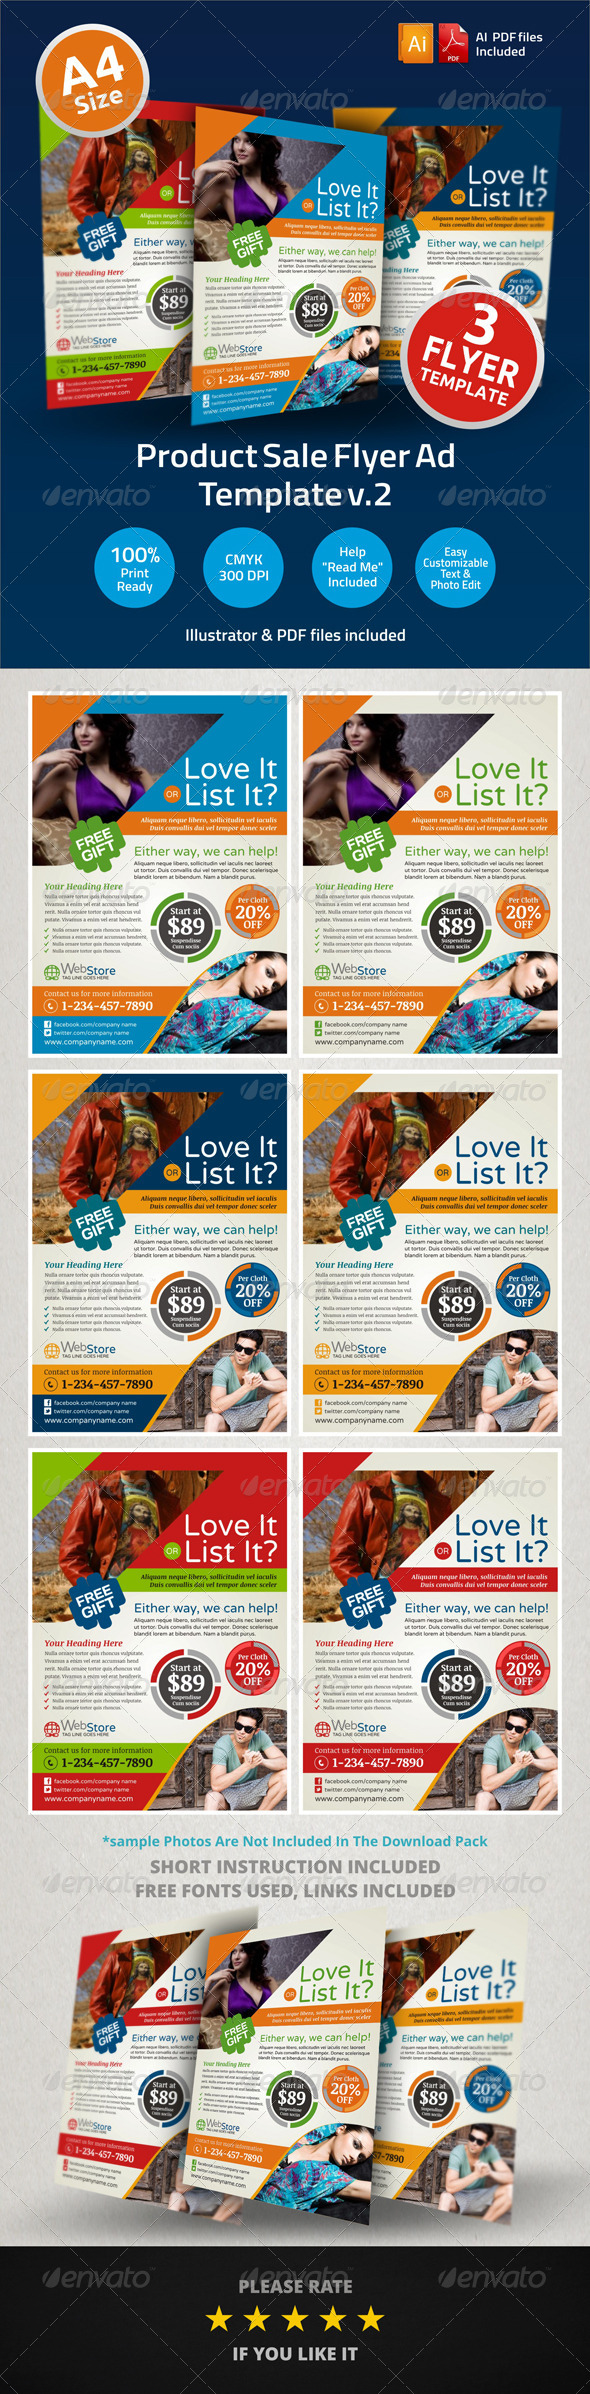 Product Sale Flyer Ad Template v2